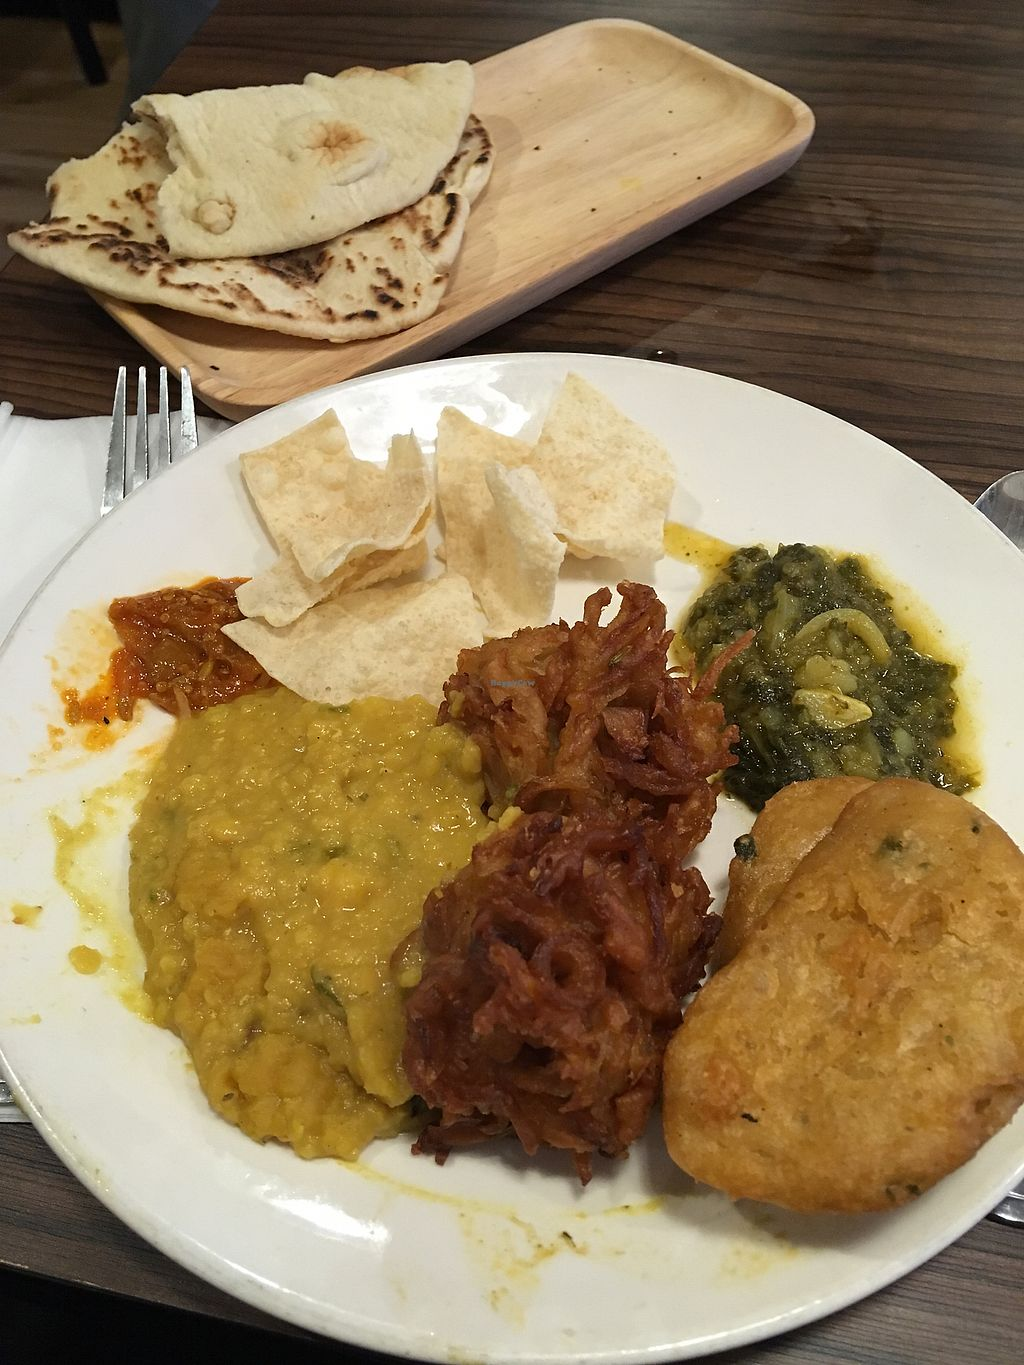 """Photo of Bombay Aloo  by <a href=""""/members/profile/JakeTinsley"""">JakeTinsley</a> <br/>Buffet <br/> March 31, 2018  - <a href='/contact/abuse/image/619/378568'>Report</a>"""